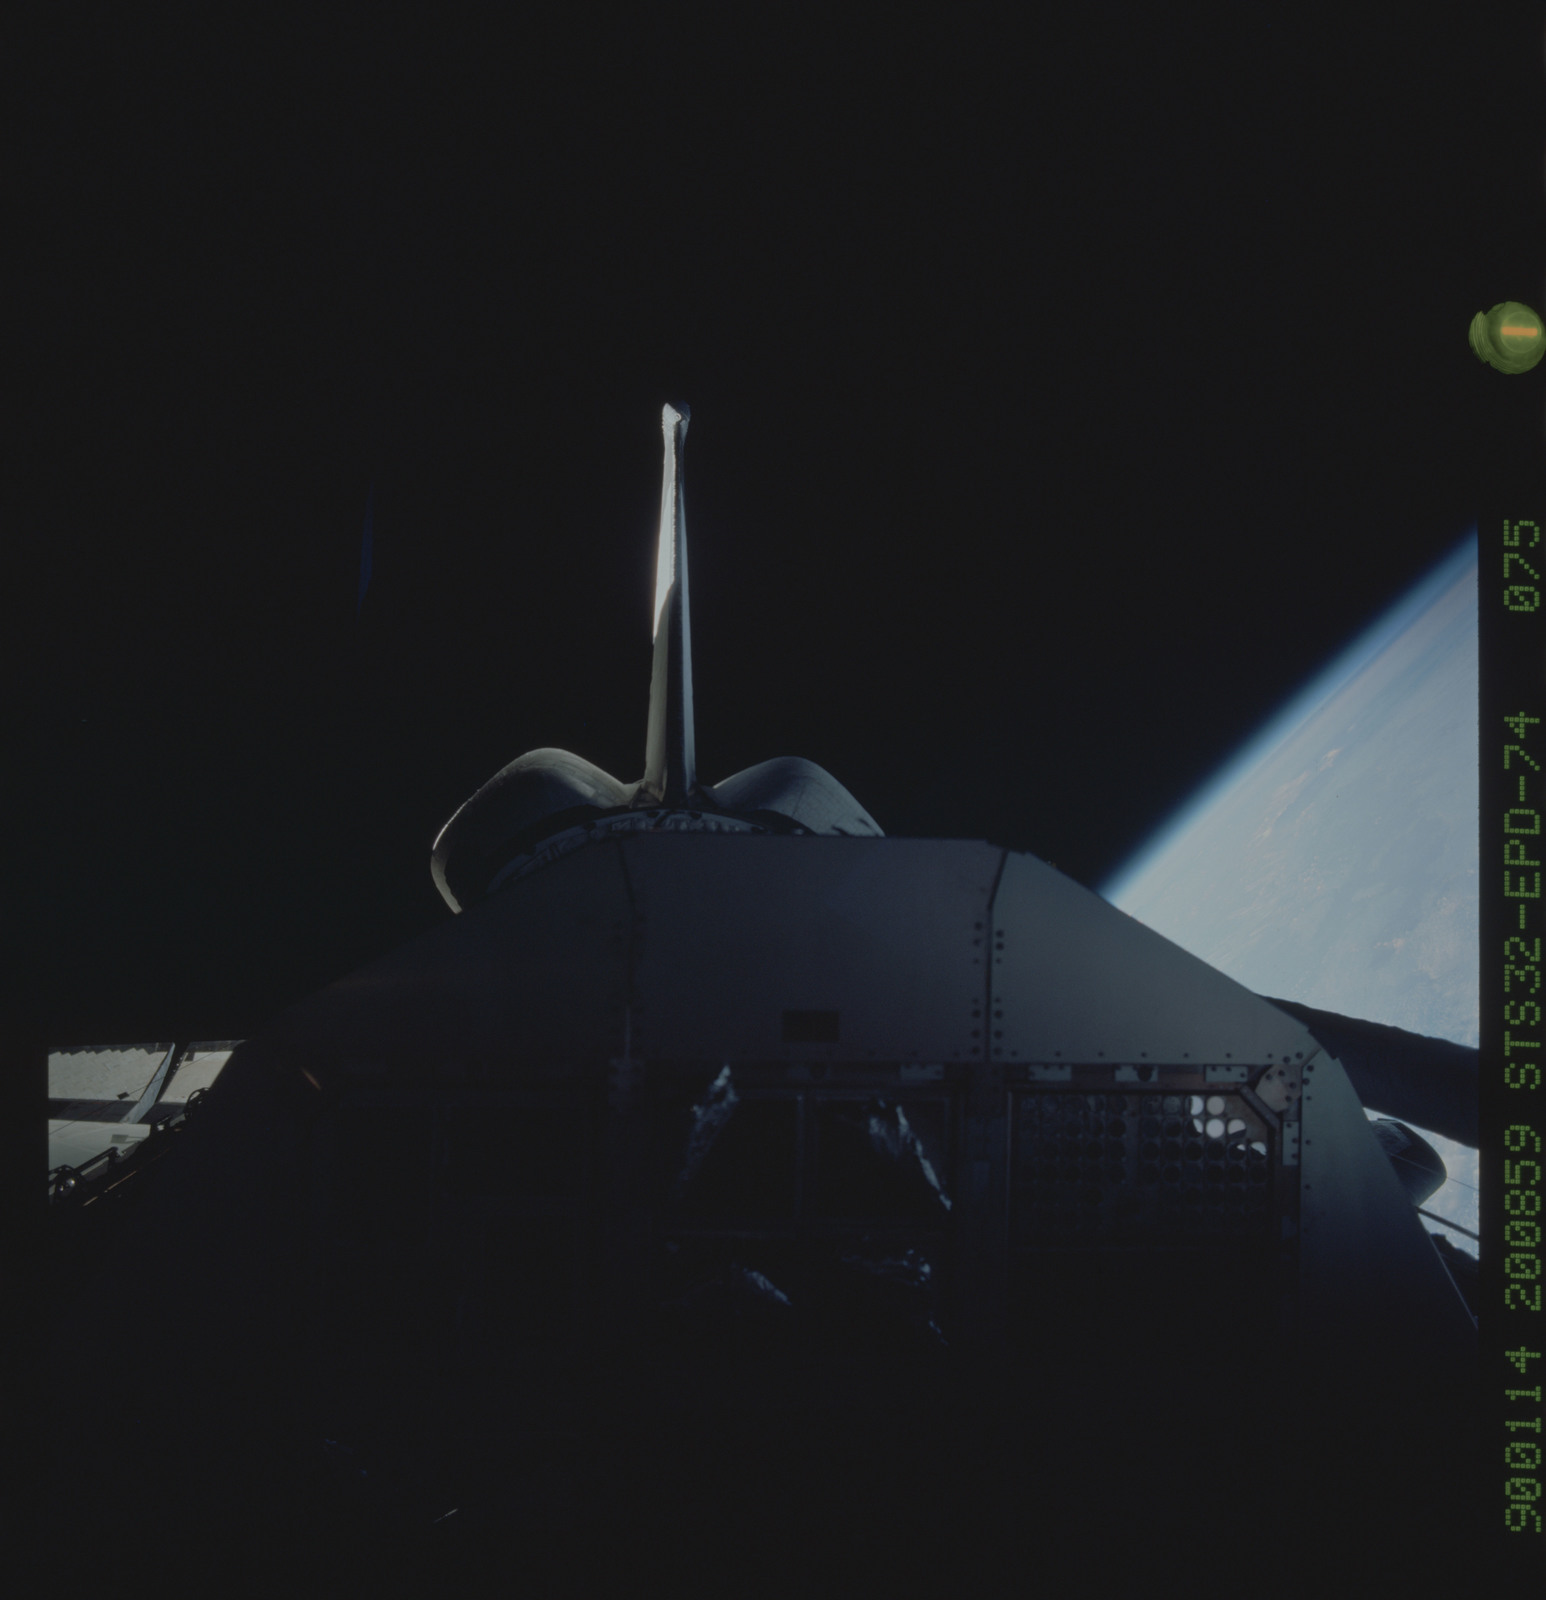 S32-74-0075 - STS-032 - Payload bay in darkness